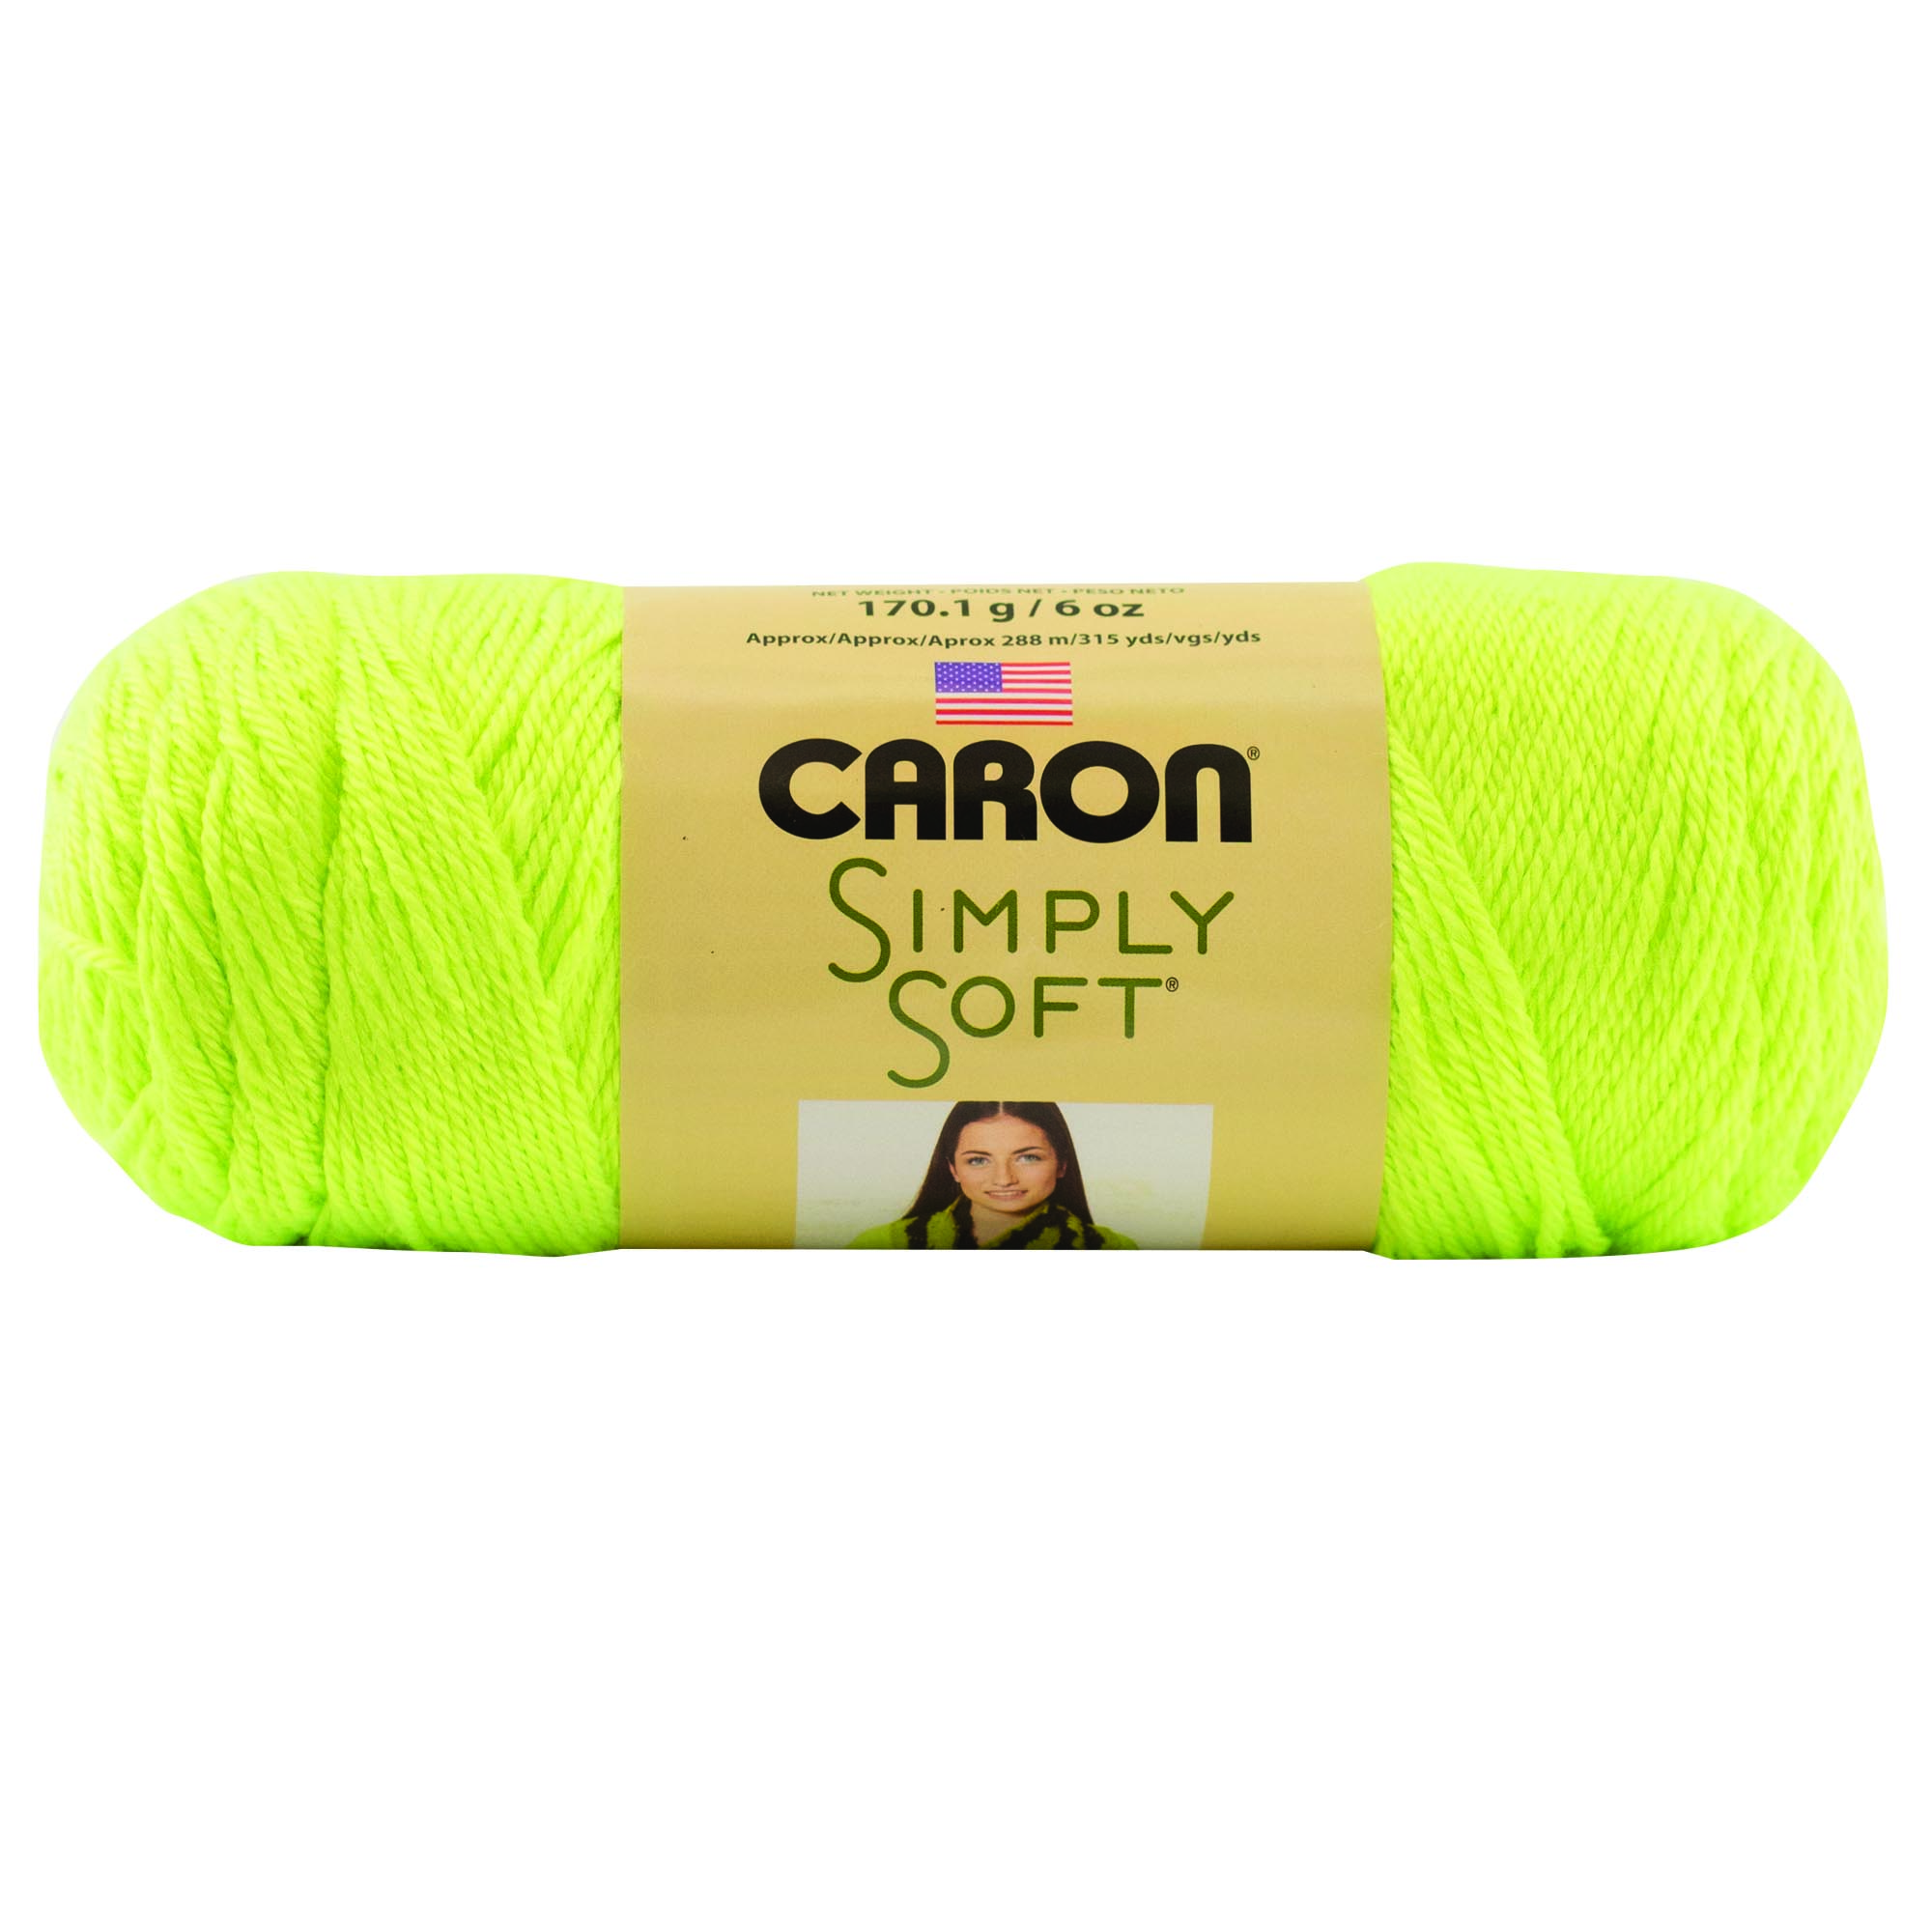 Caron Simply Soft Neon Yellow 3-6Oz